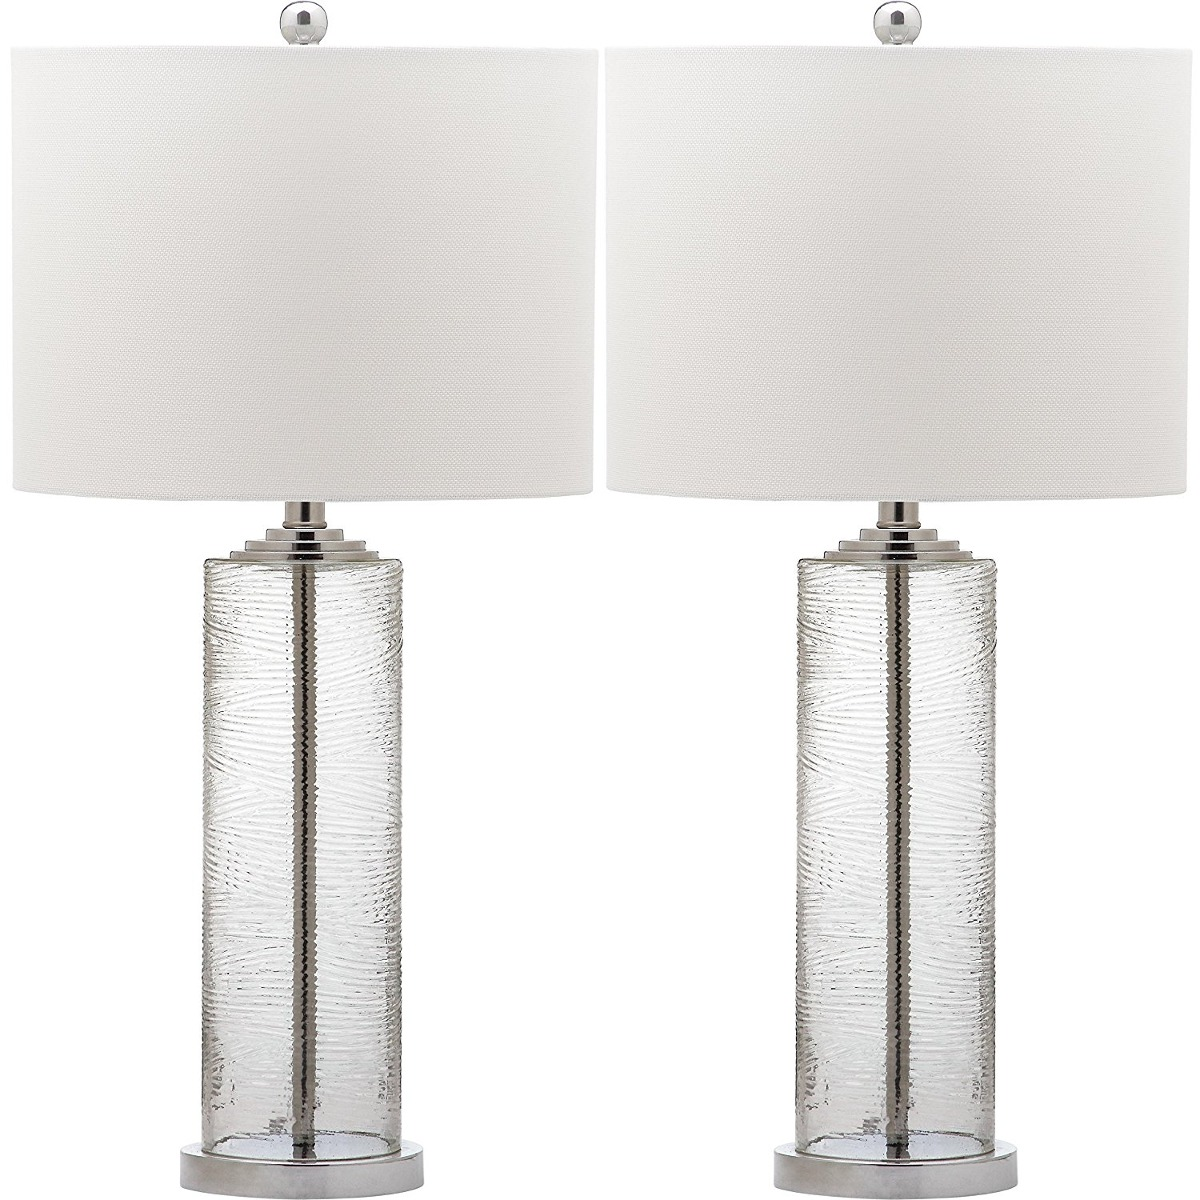 Safavieh lighting collection grant clear 29 inch table lamp clear 29 inch table lamp cargando zoom aloadofball Gallery